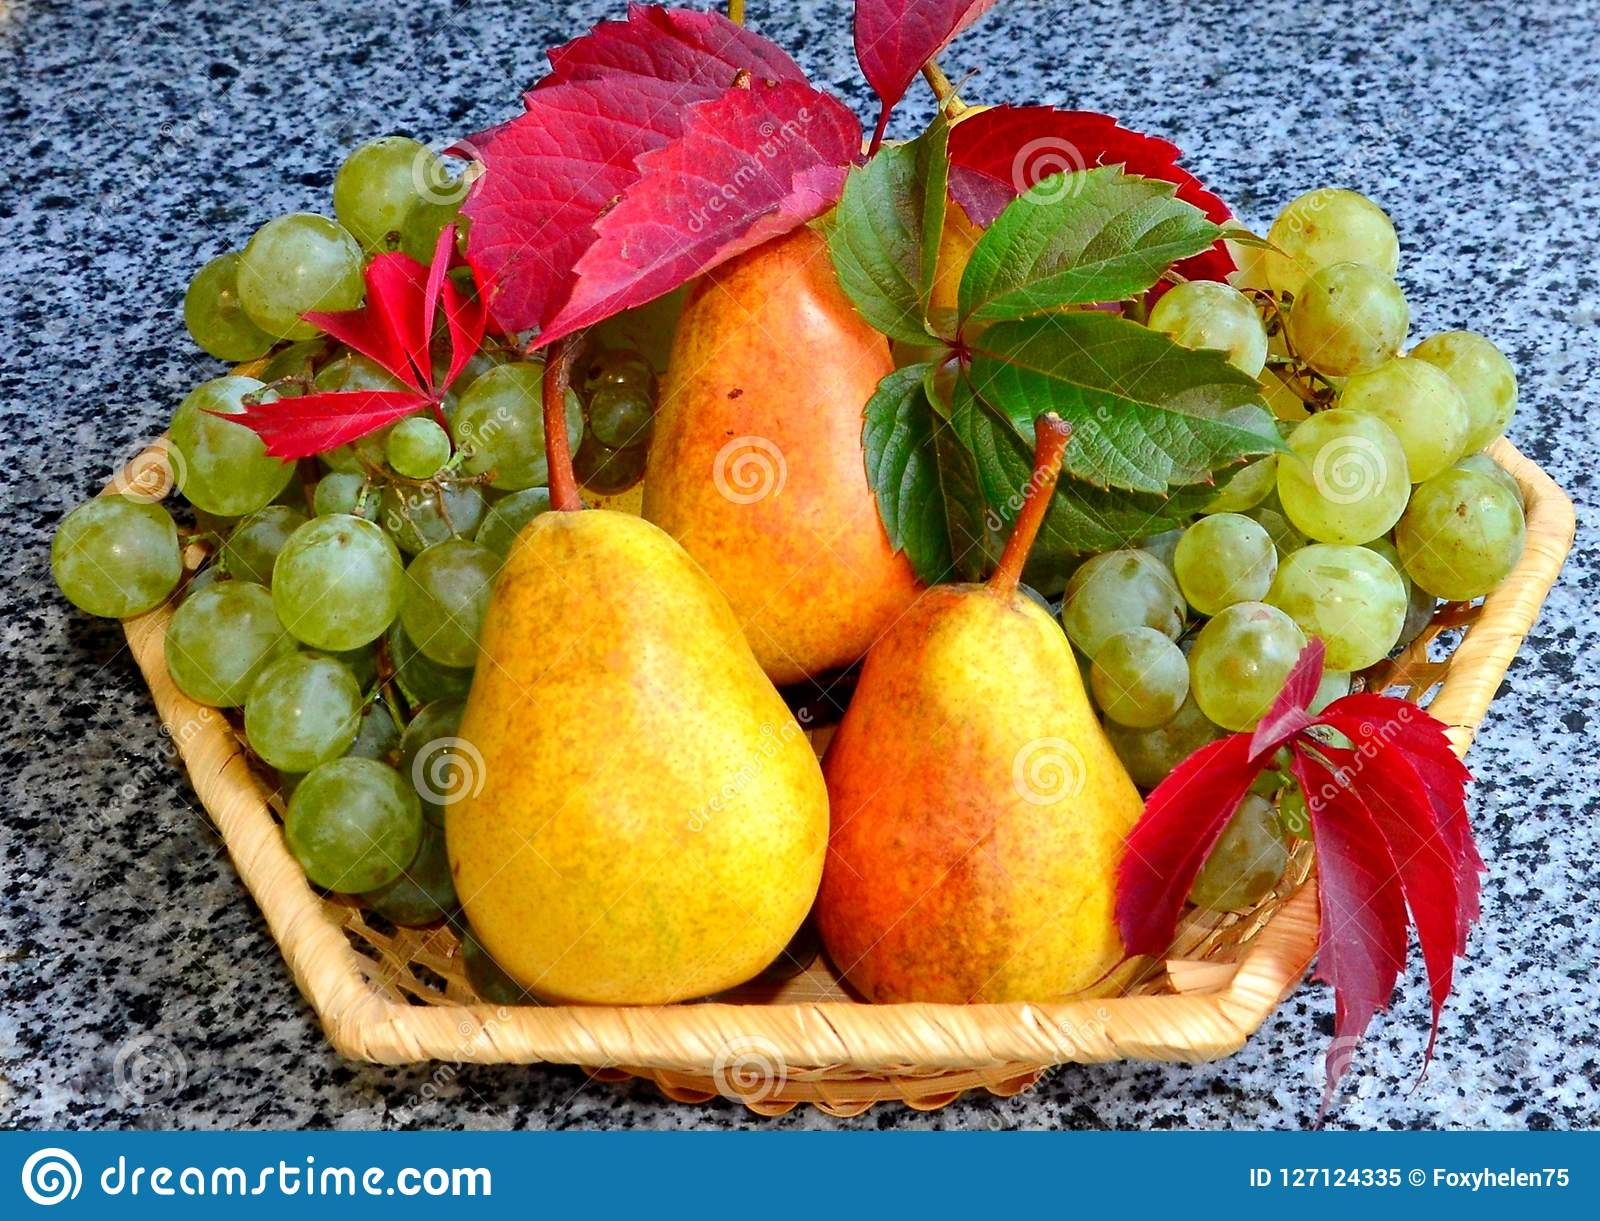 A ripe juicy pear lies on a table, in the background a vase with grapes and pears